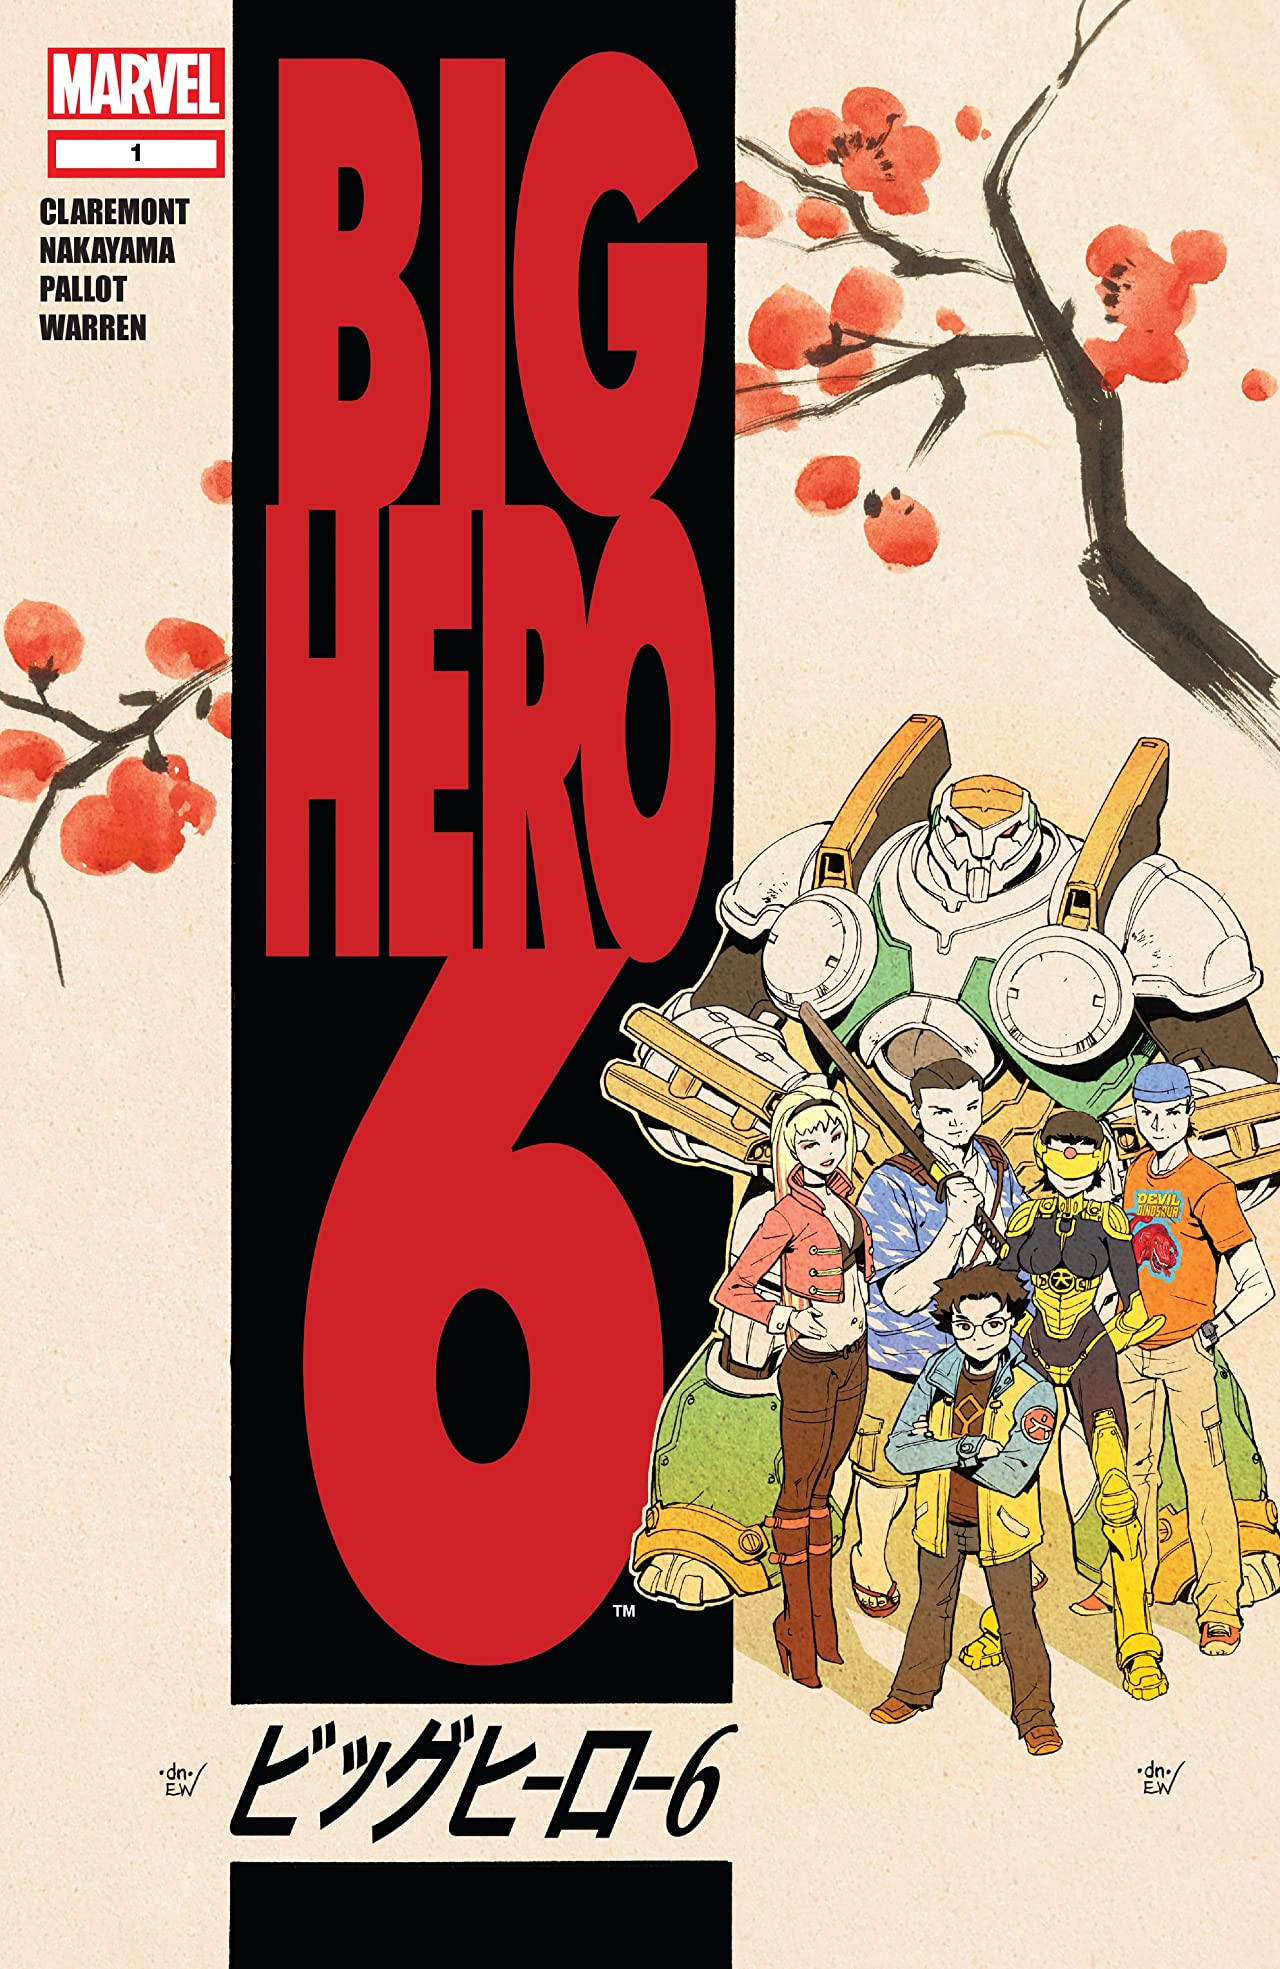 Big Hero 6 (2009) #1 (of 5)